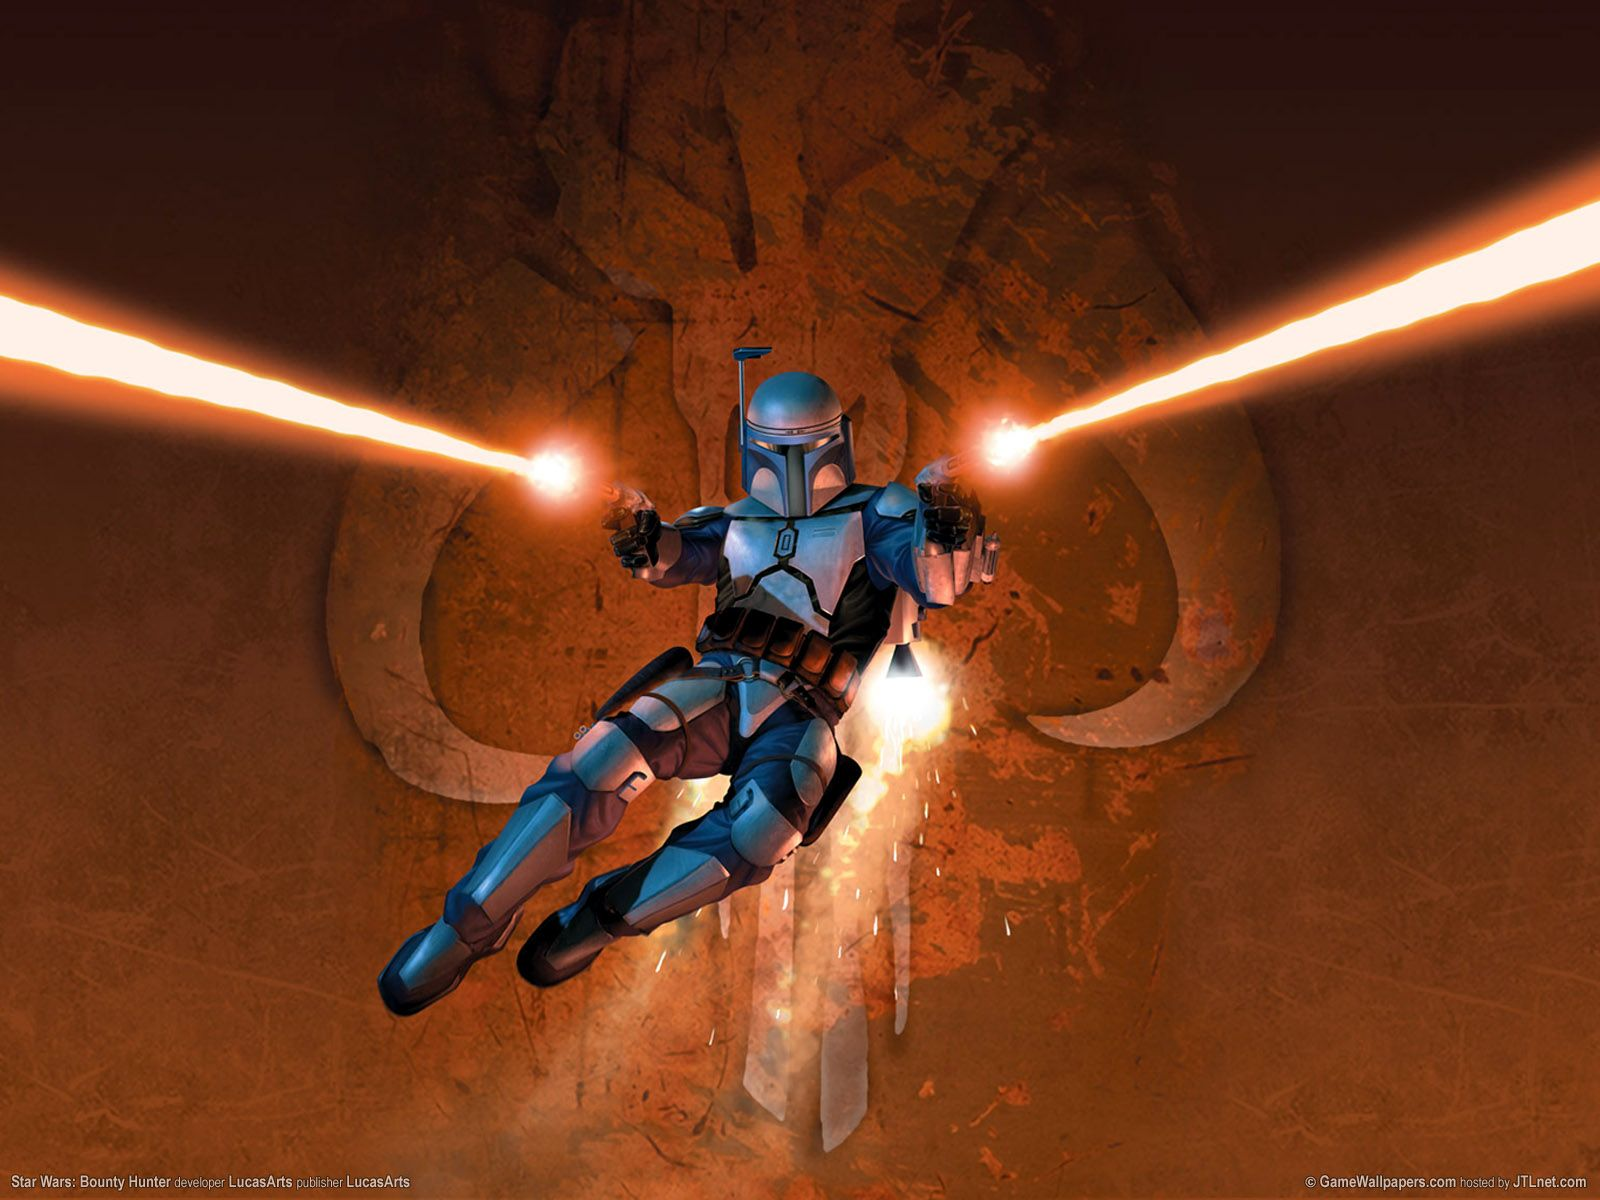 Star Wars Bounty Hunter Wallpapers - Wallpaper Cave